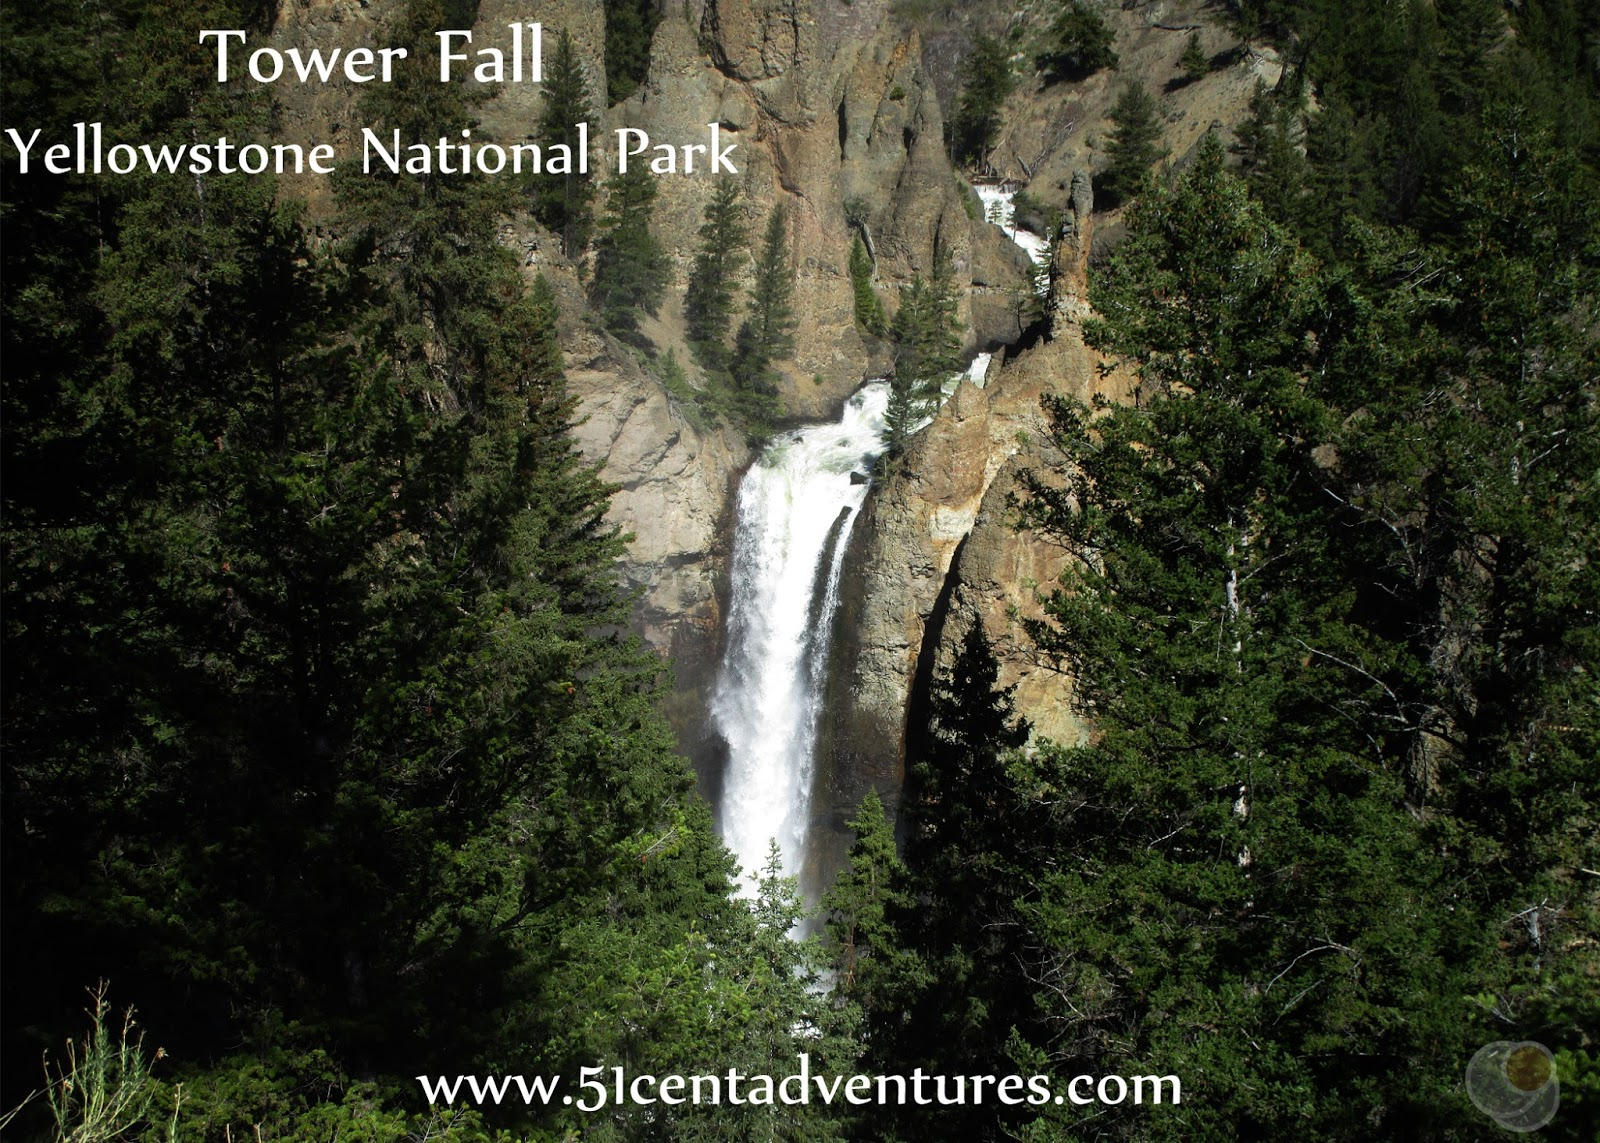 Tower Fall Yellowstone National Park 51 Cent Adventures